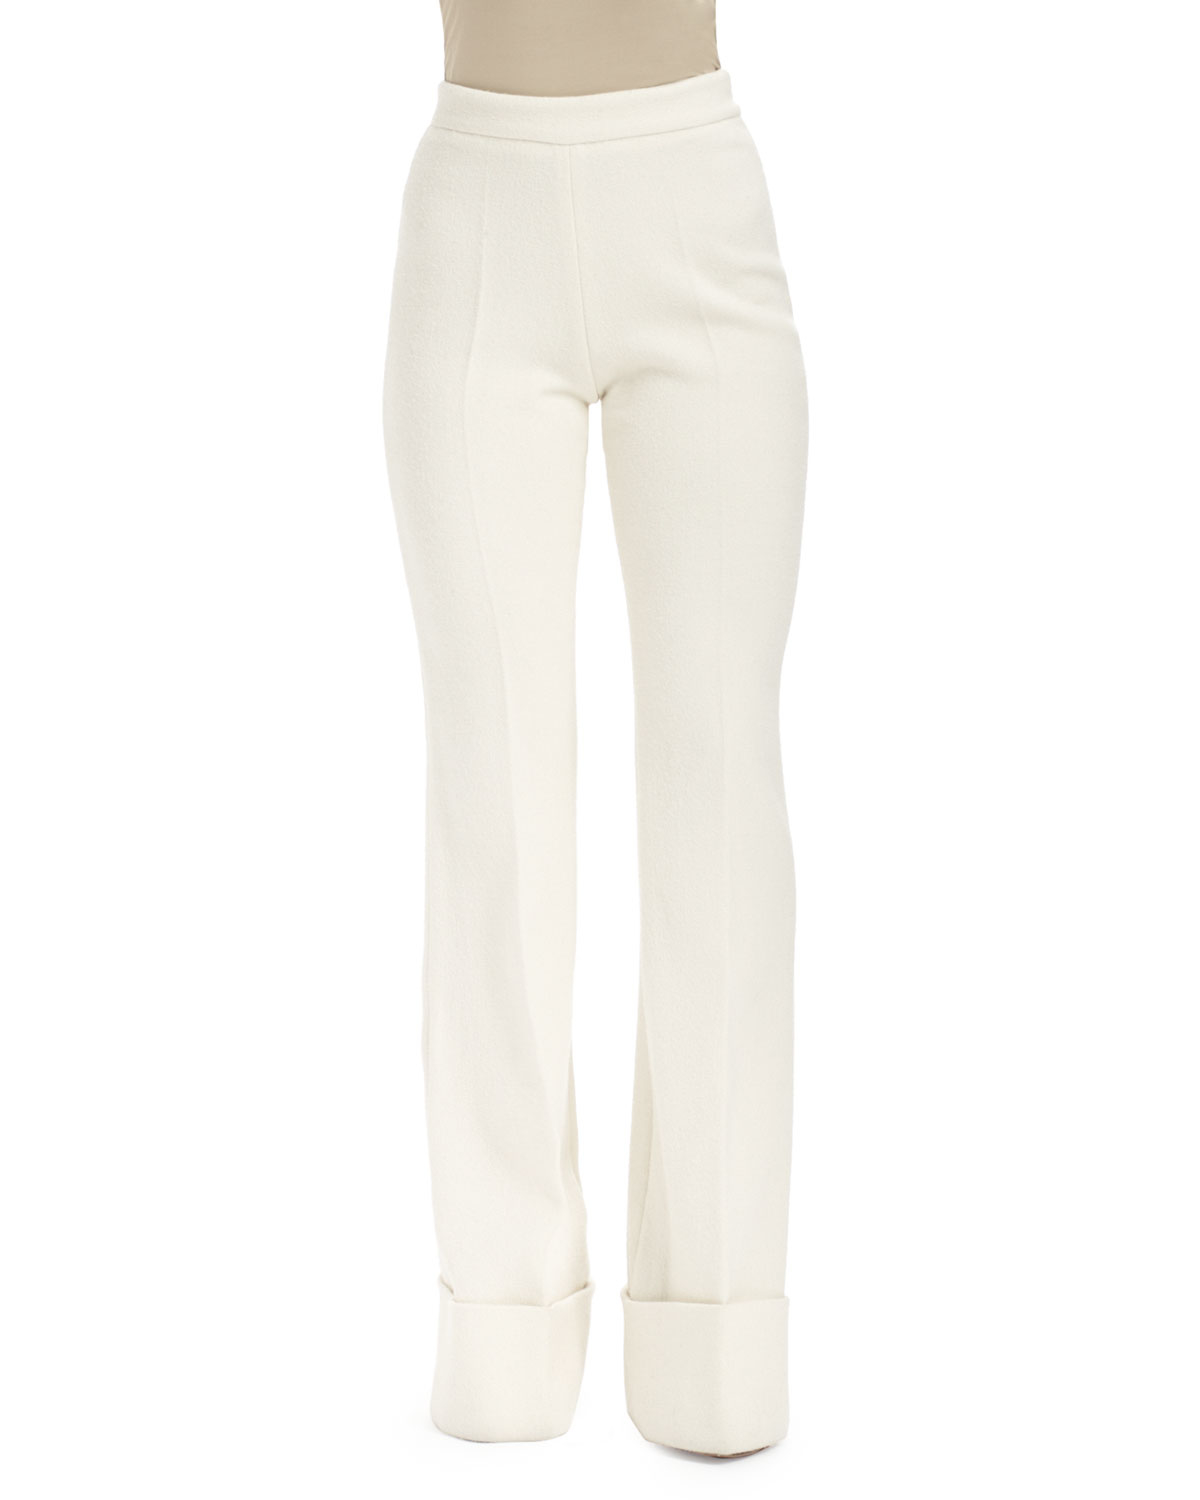 Stella mccartney High-waisted Cuffed Wide-leg Pants in White | Lyst